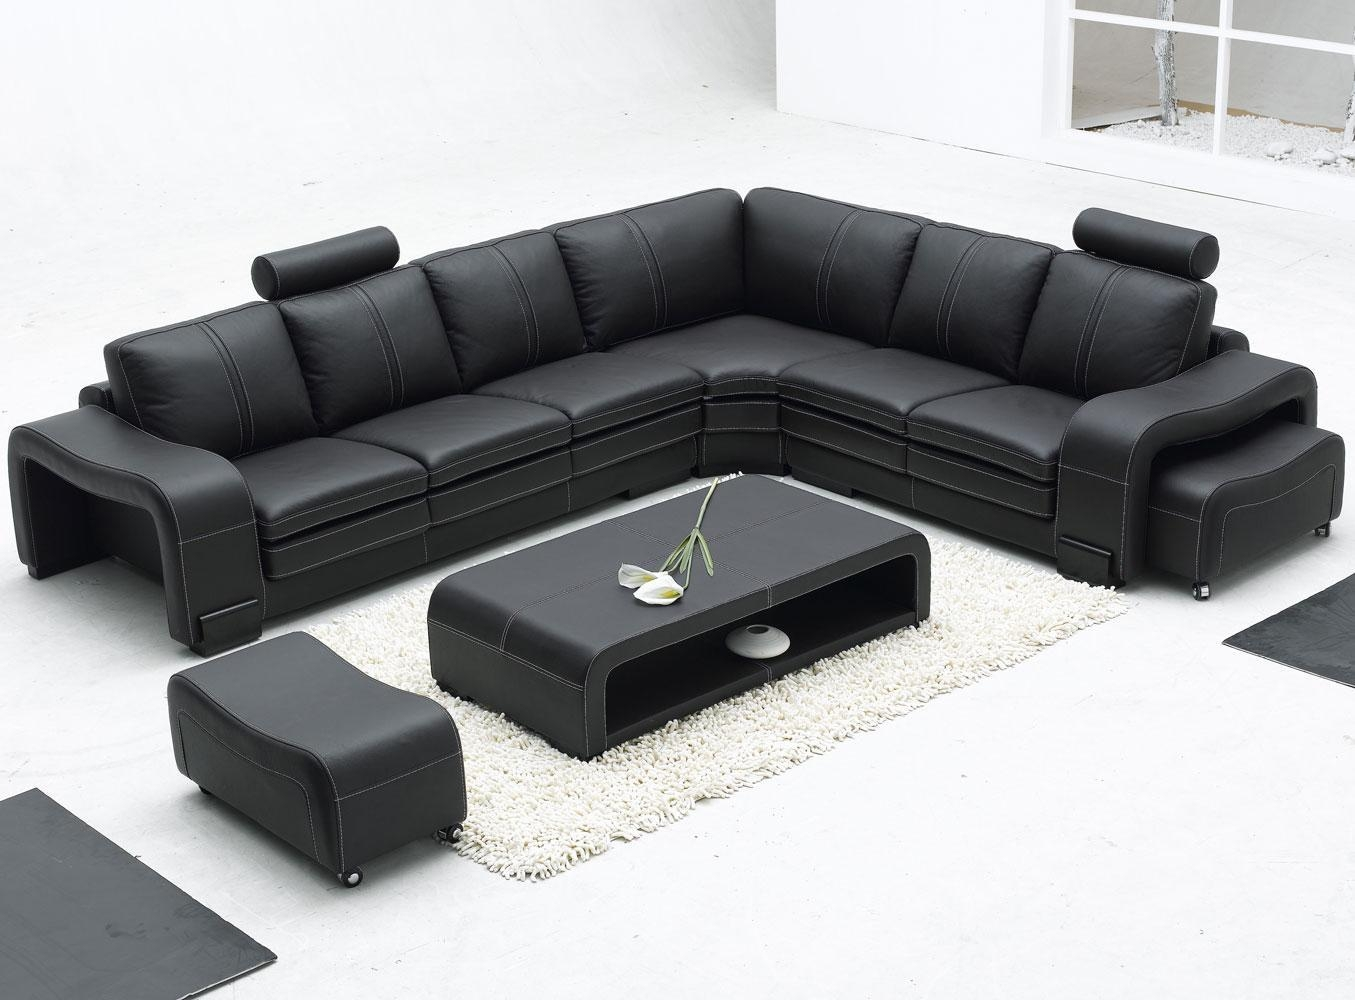 perfect design and steel styles inpiration futon full size desing sofa foot room leather style black sleeper of amazing stainless living with